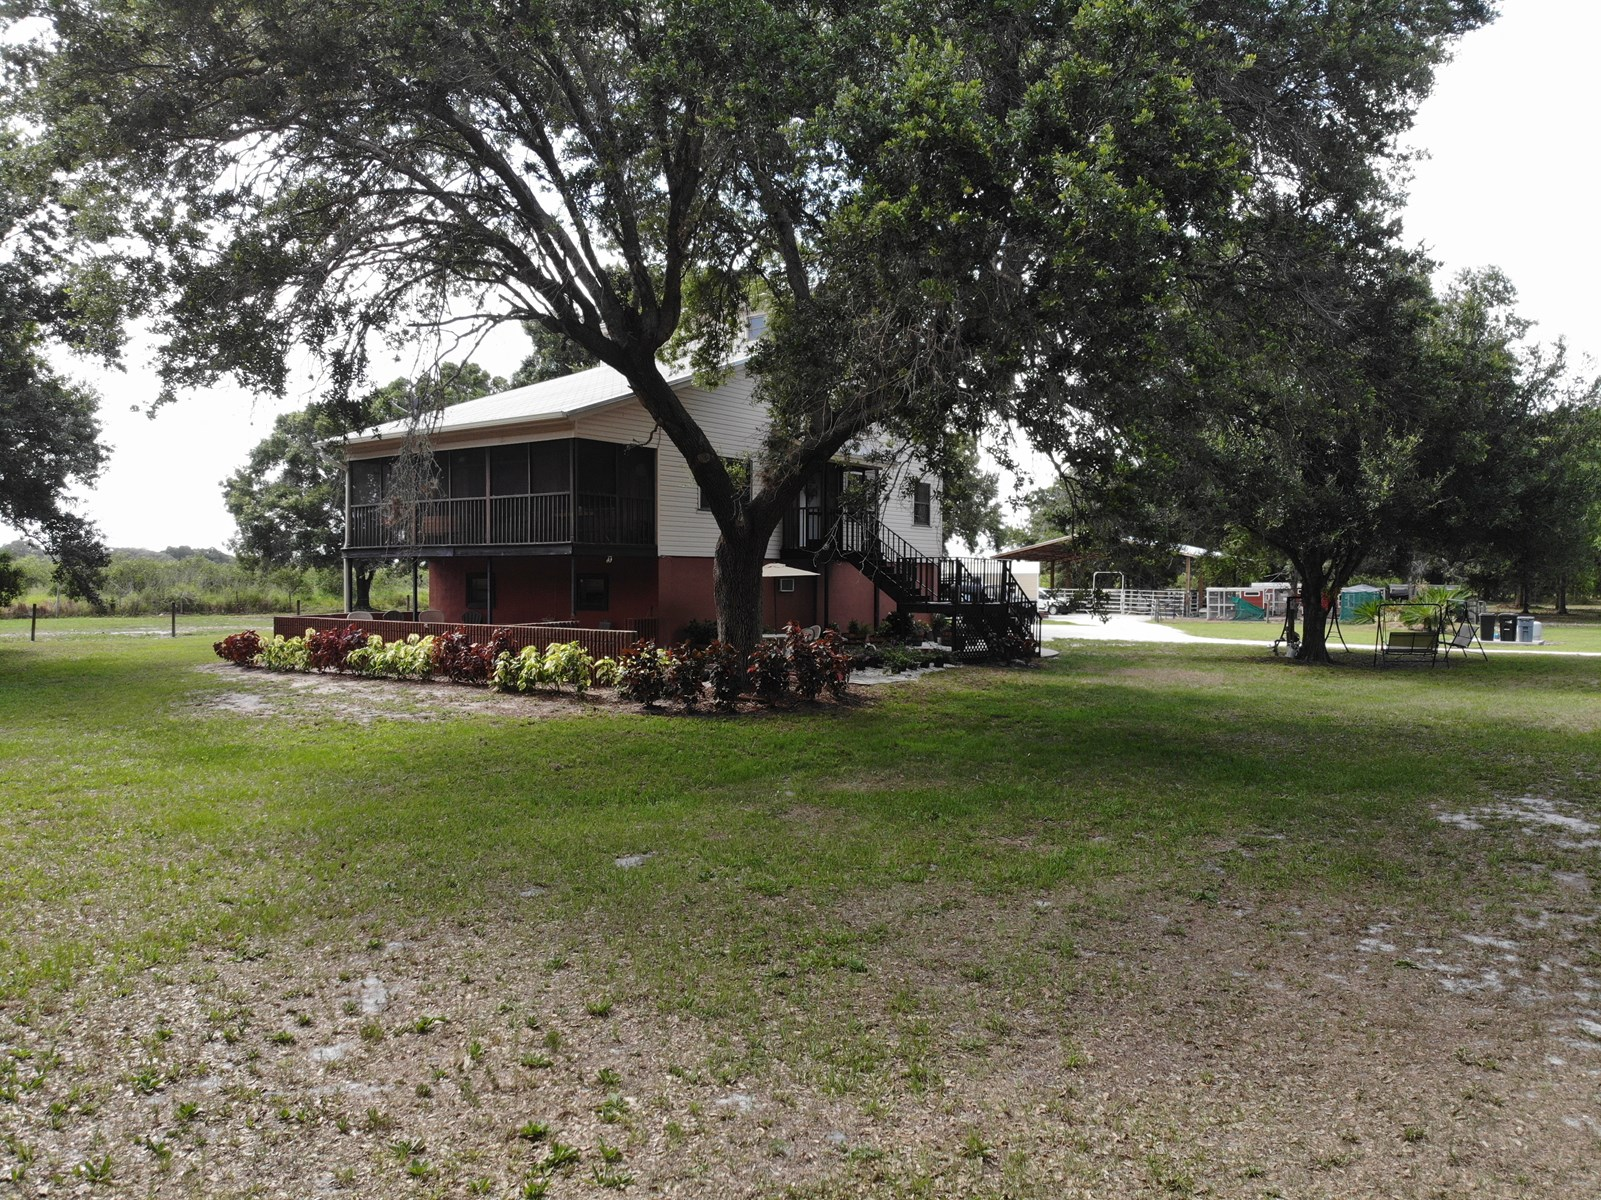 3 BR 3 BA home on 10 fenced acres!